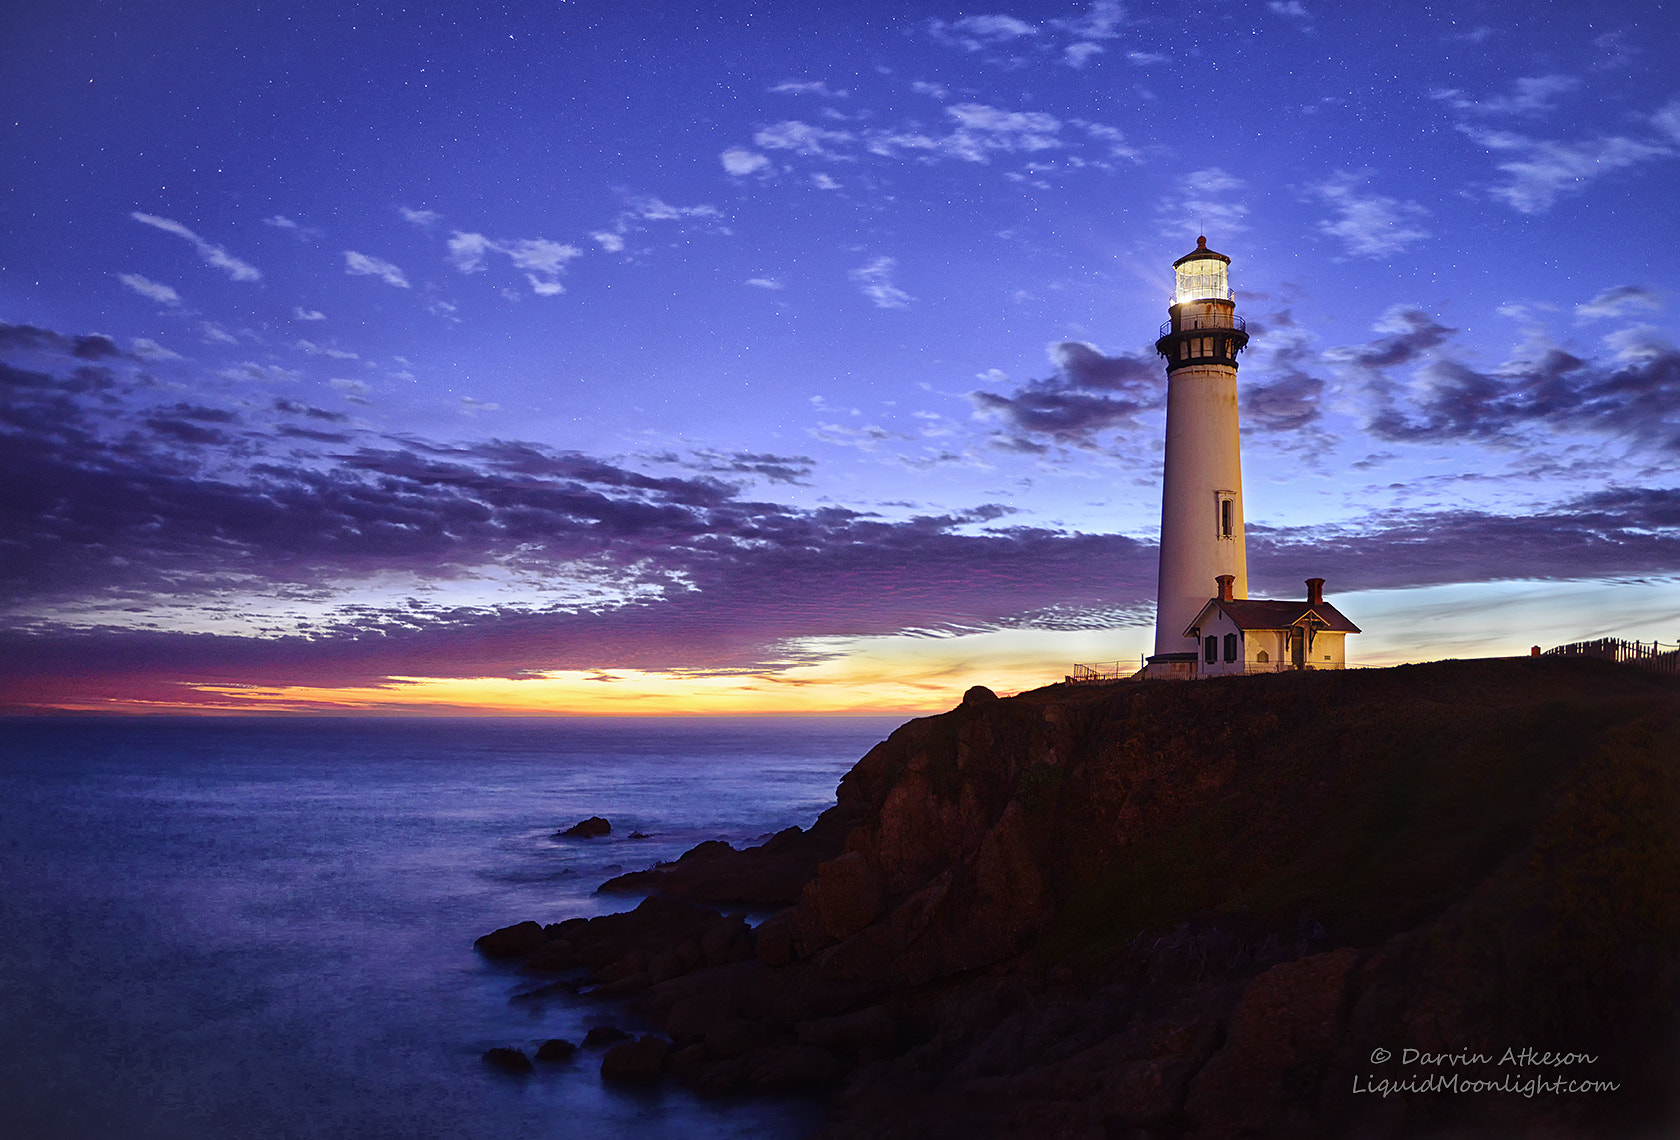 Photograph Stars at Pigeon Point Lighthouse by Darvin Atkeson on 500px